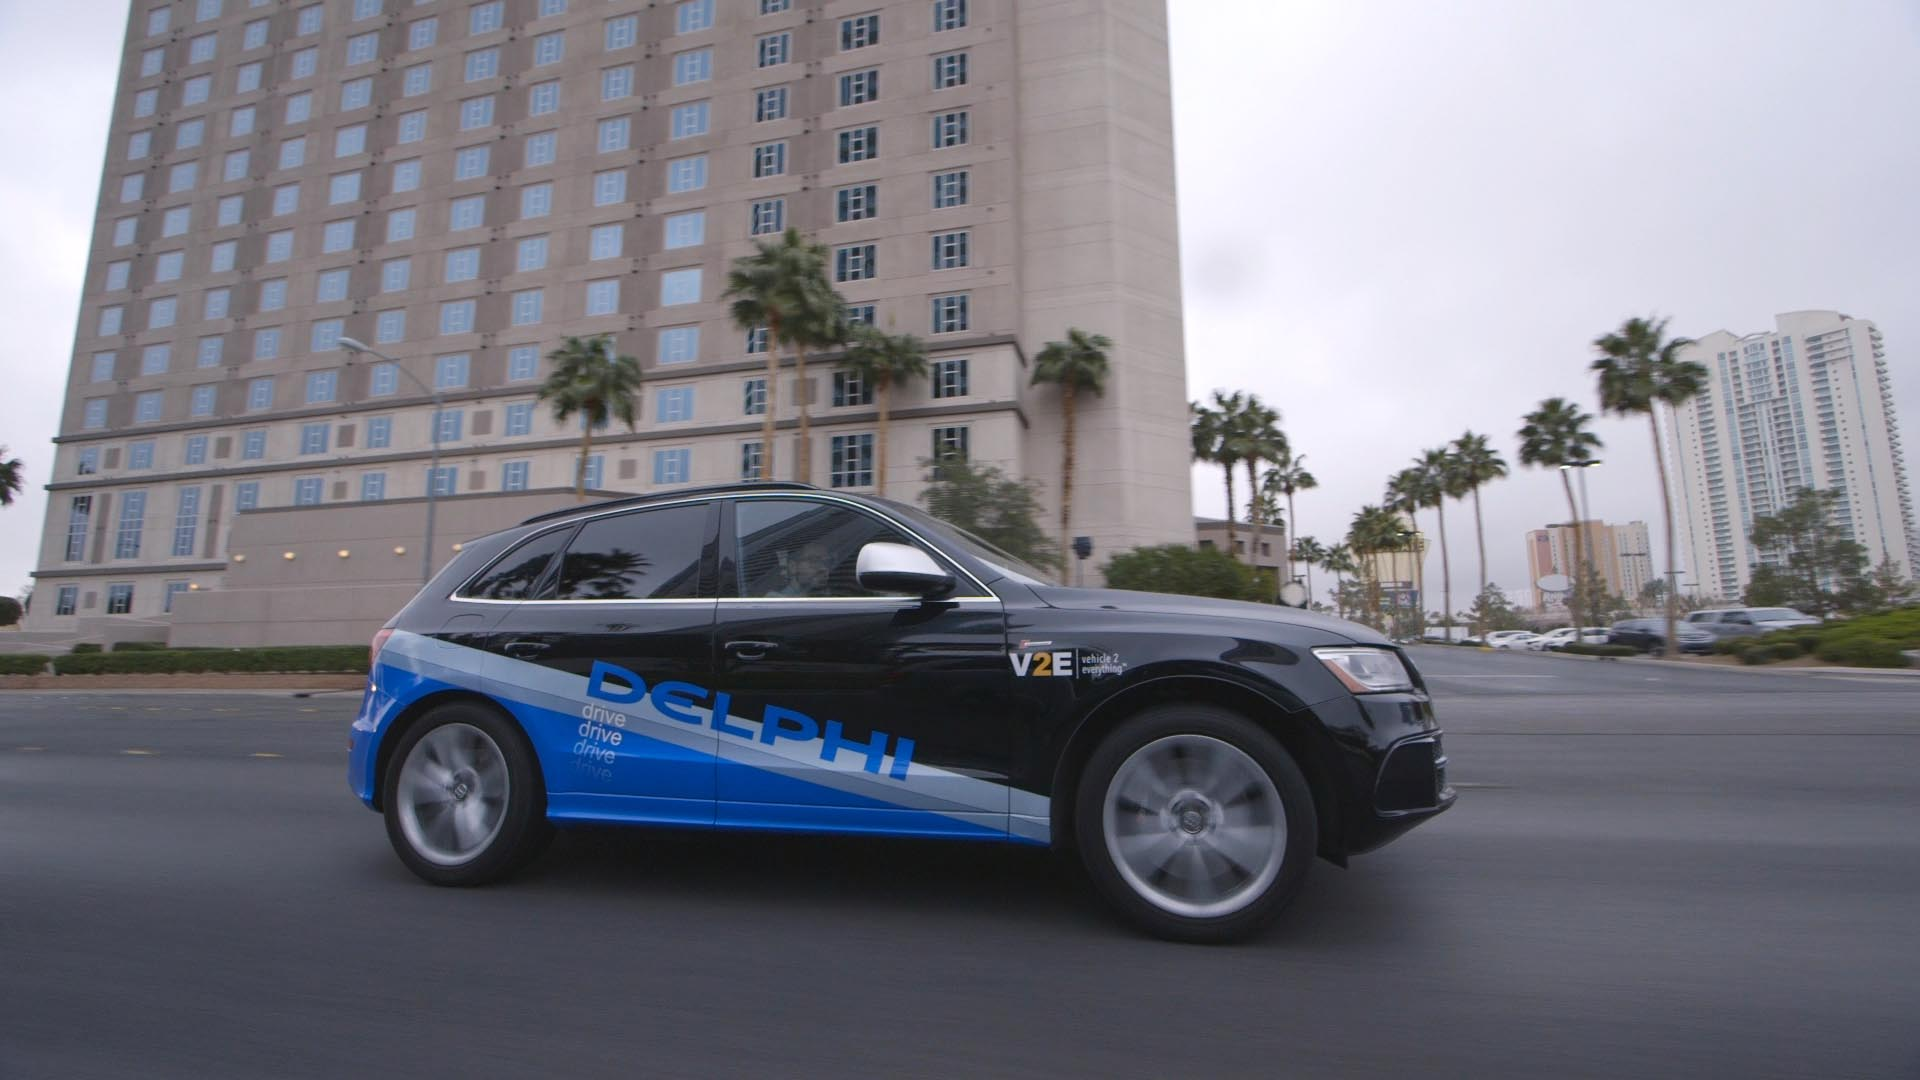 Why This Acquisition Makes Delphi Automotive a Self-Driving Beast